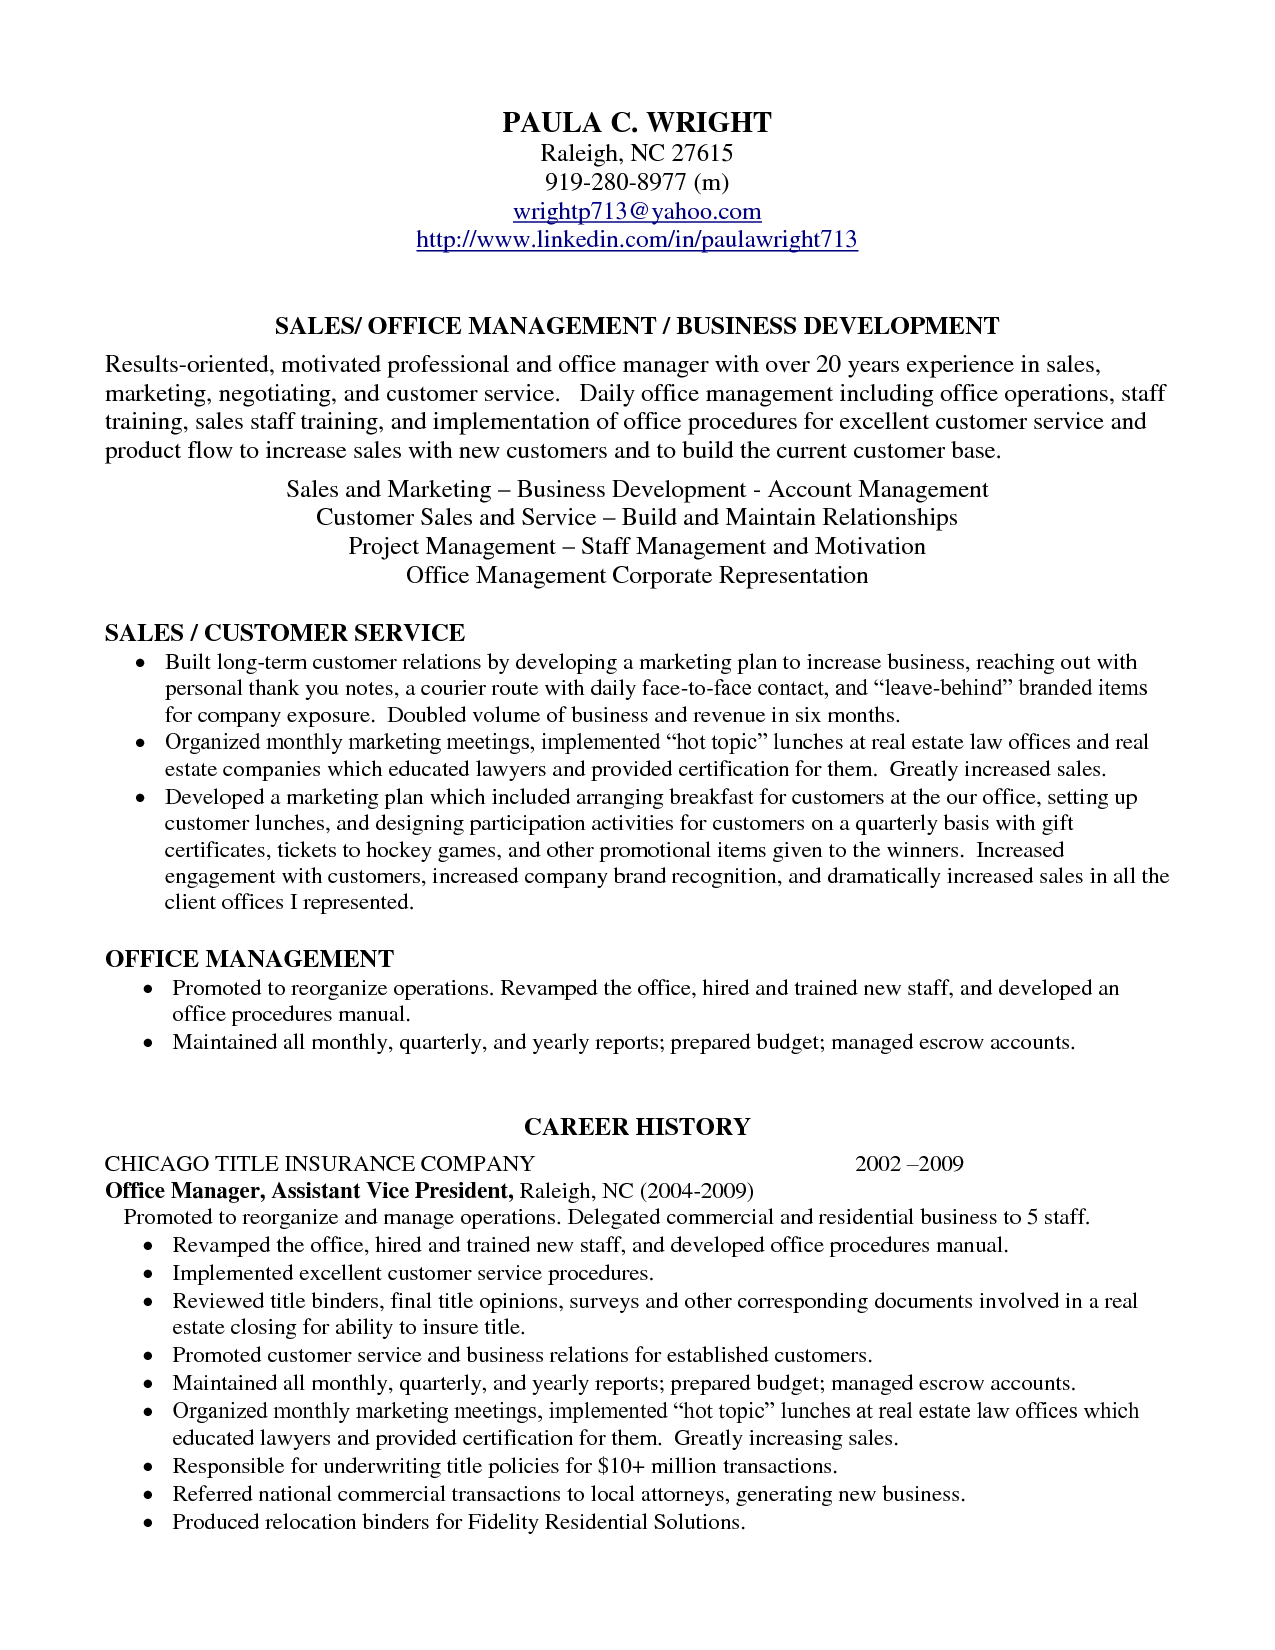 Personal Marketing Resume Professional Profile Resume Examples Resume Professional